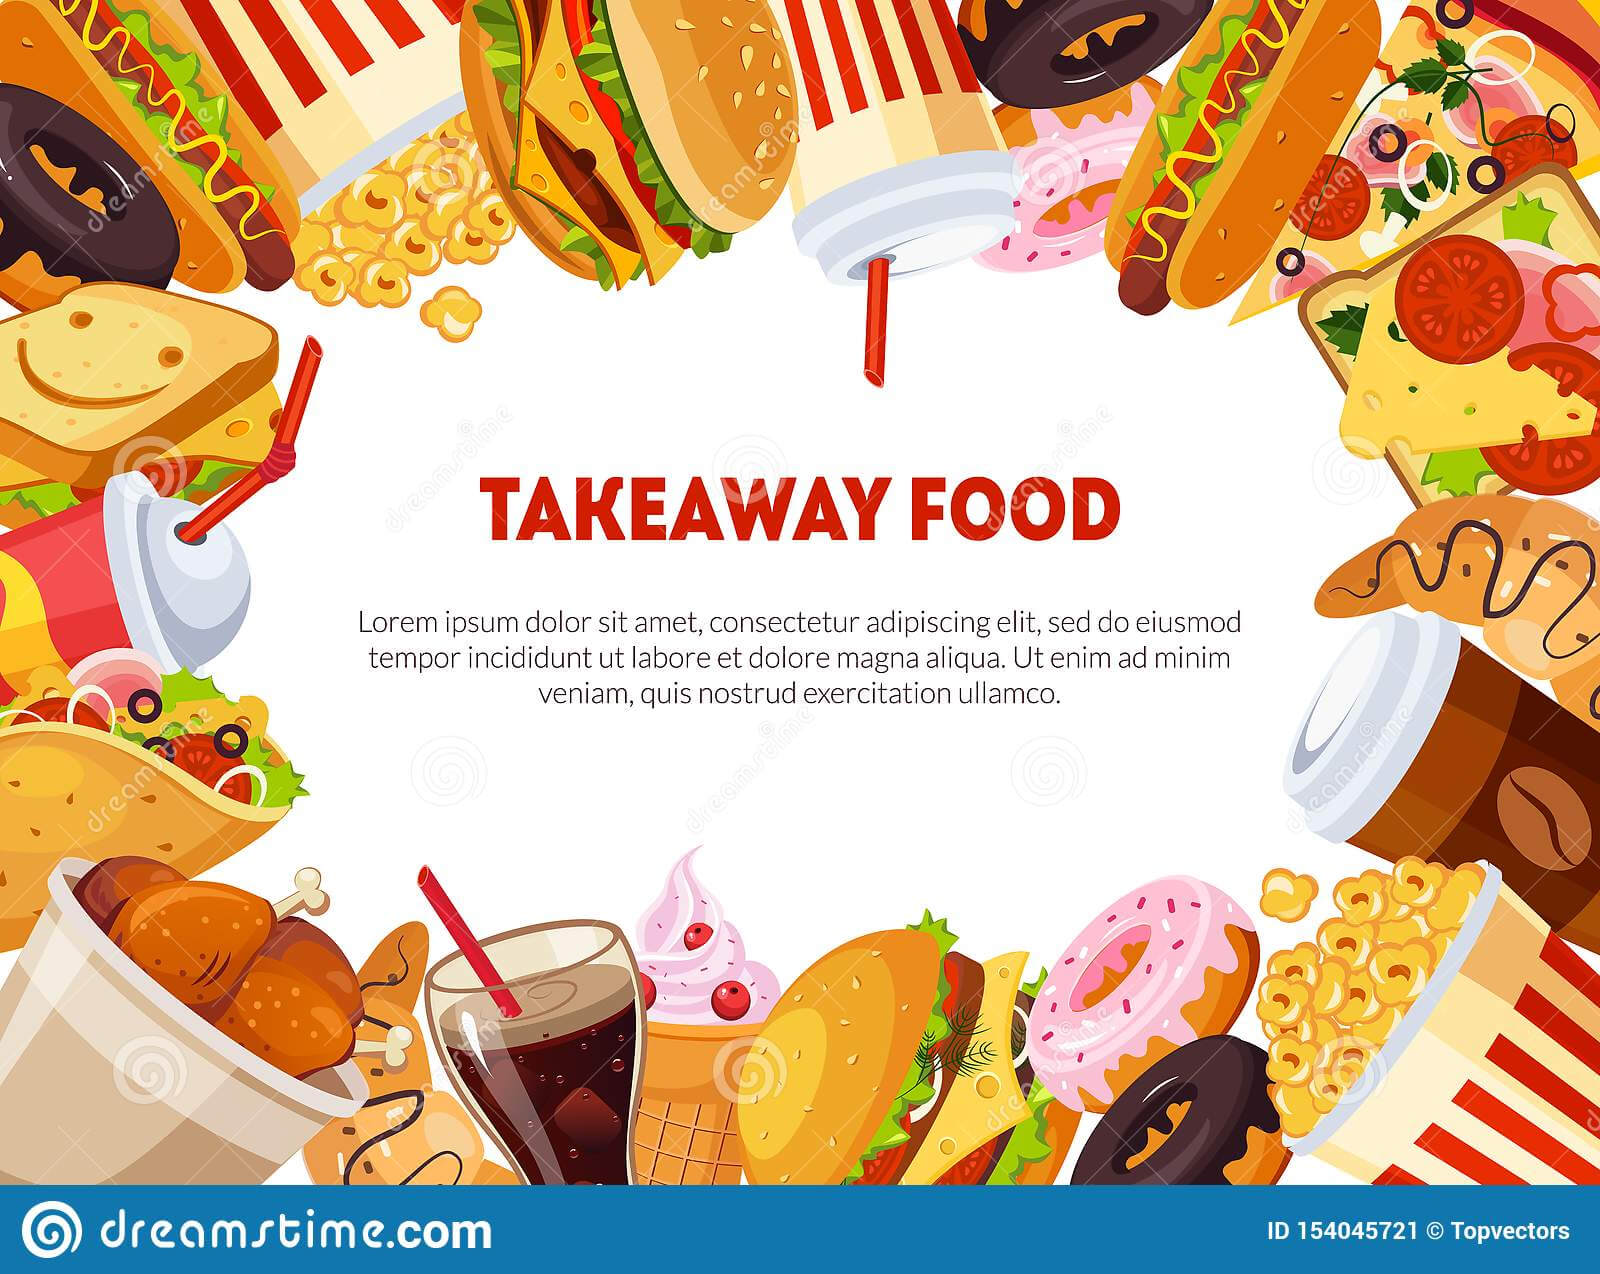 Takeaway Food Banner Template With Delicious Fast Food Intended For Food Banner Template